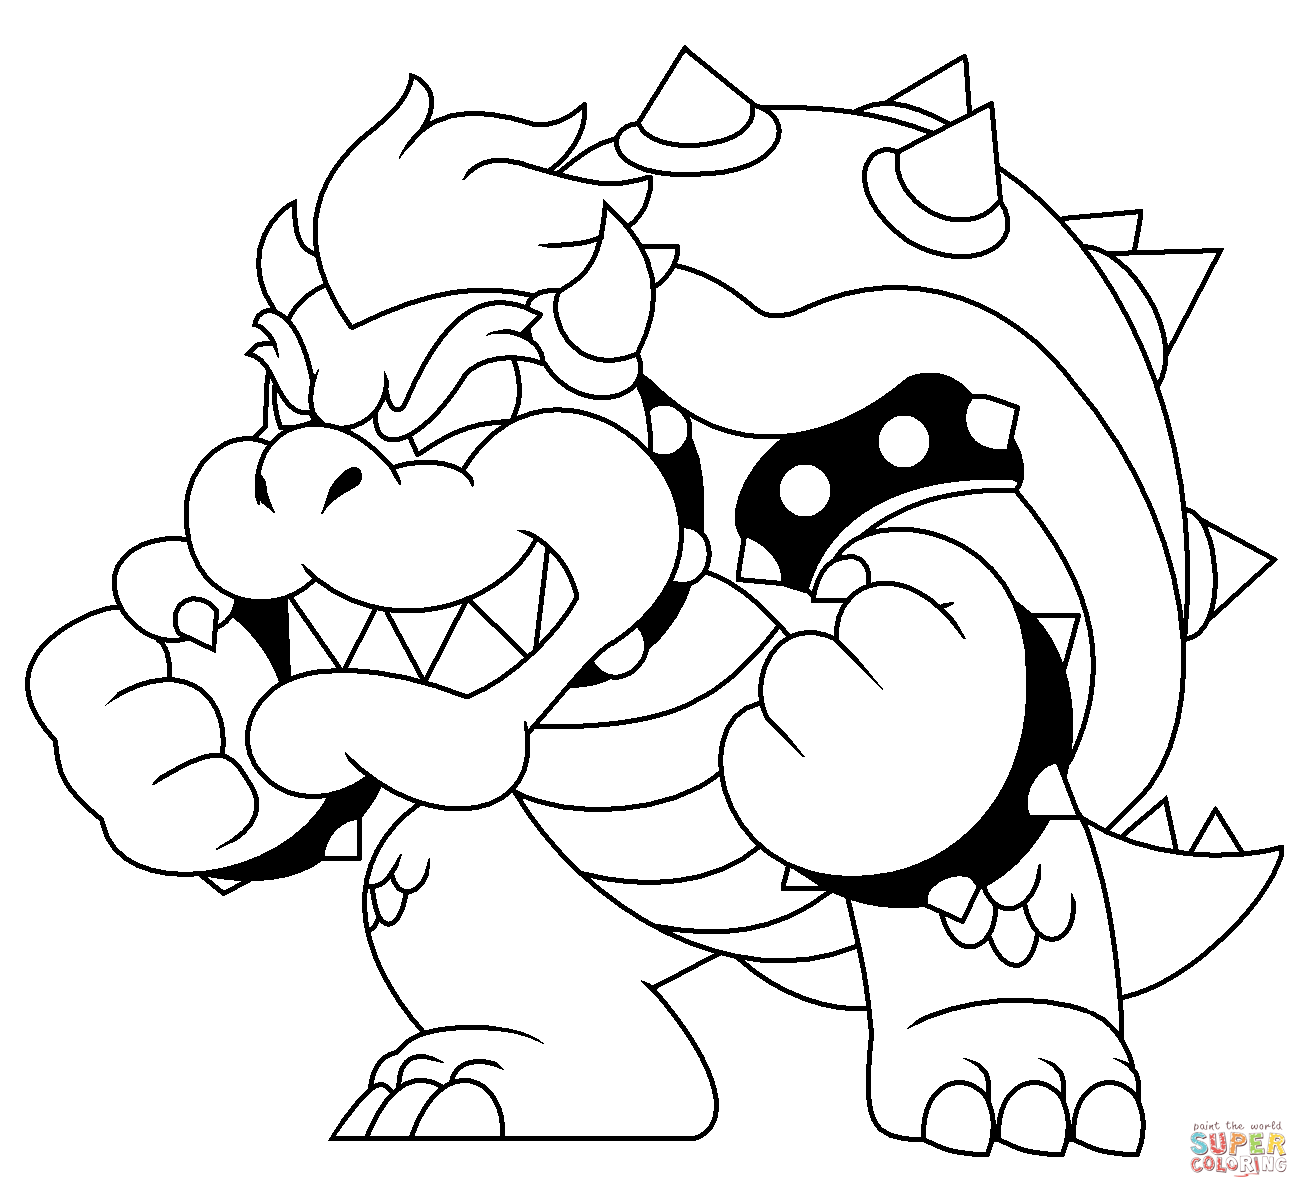 Bowser Coloring Pages Online Coloring Home Bowser Coloring Pages